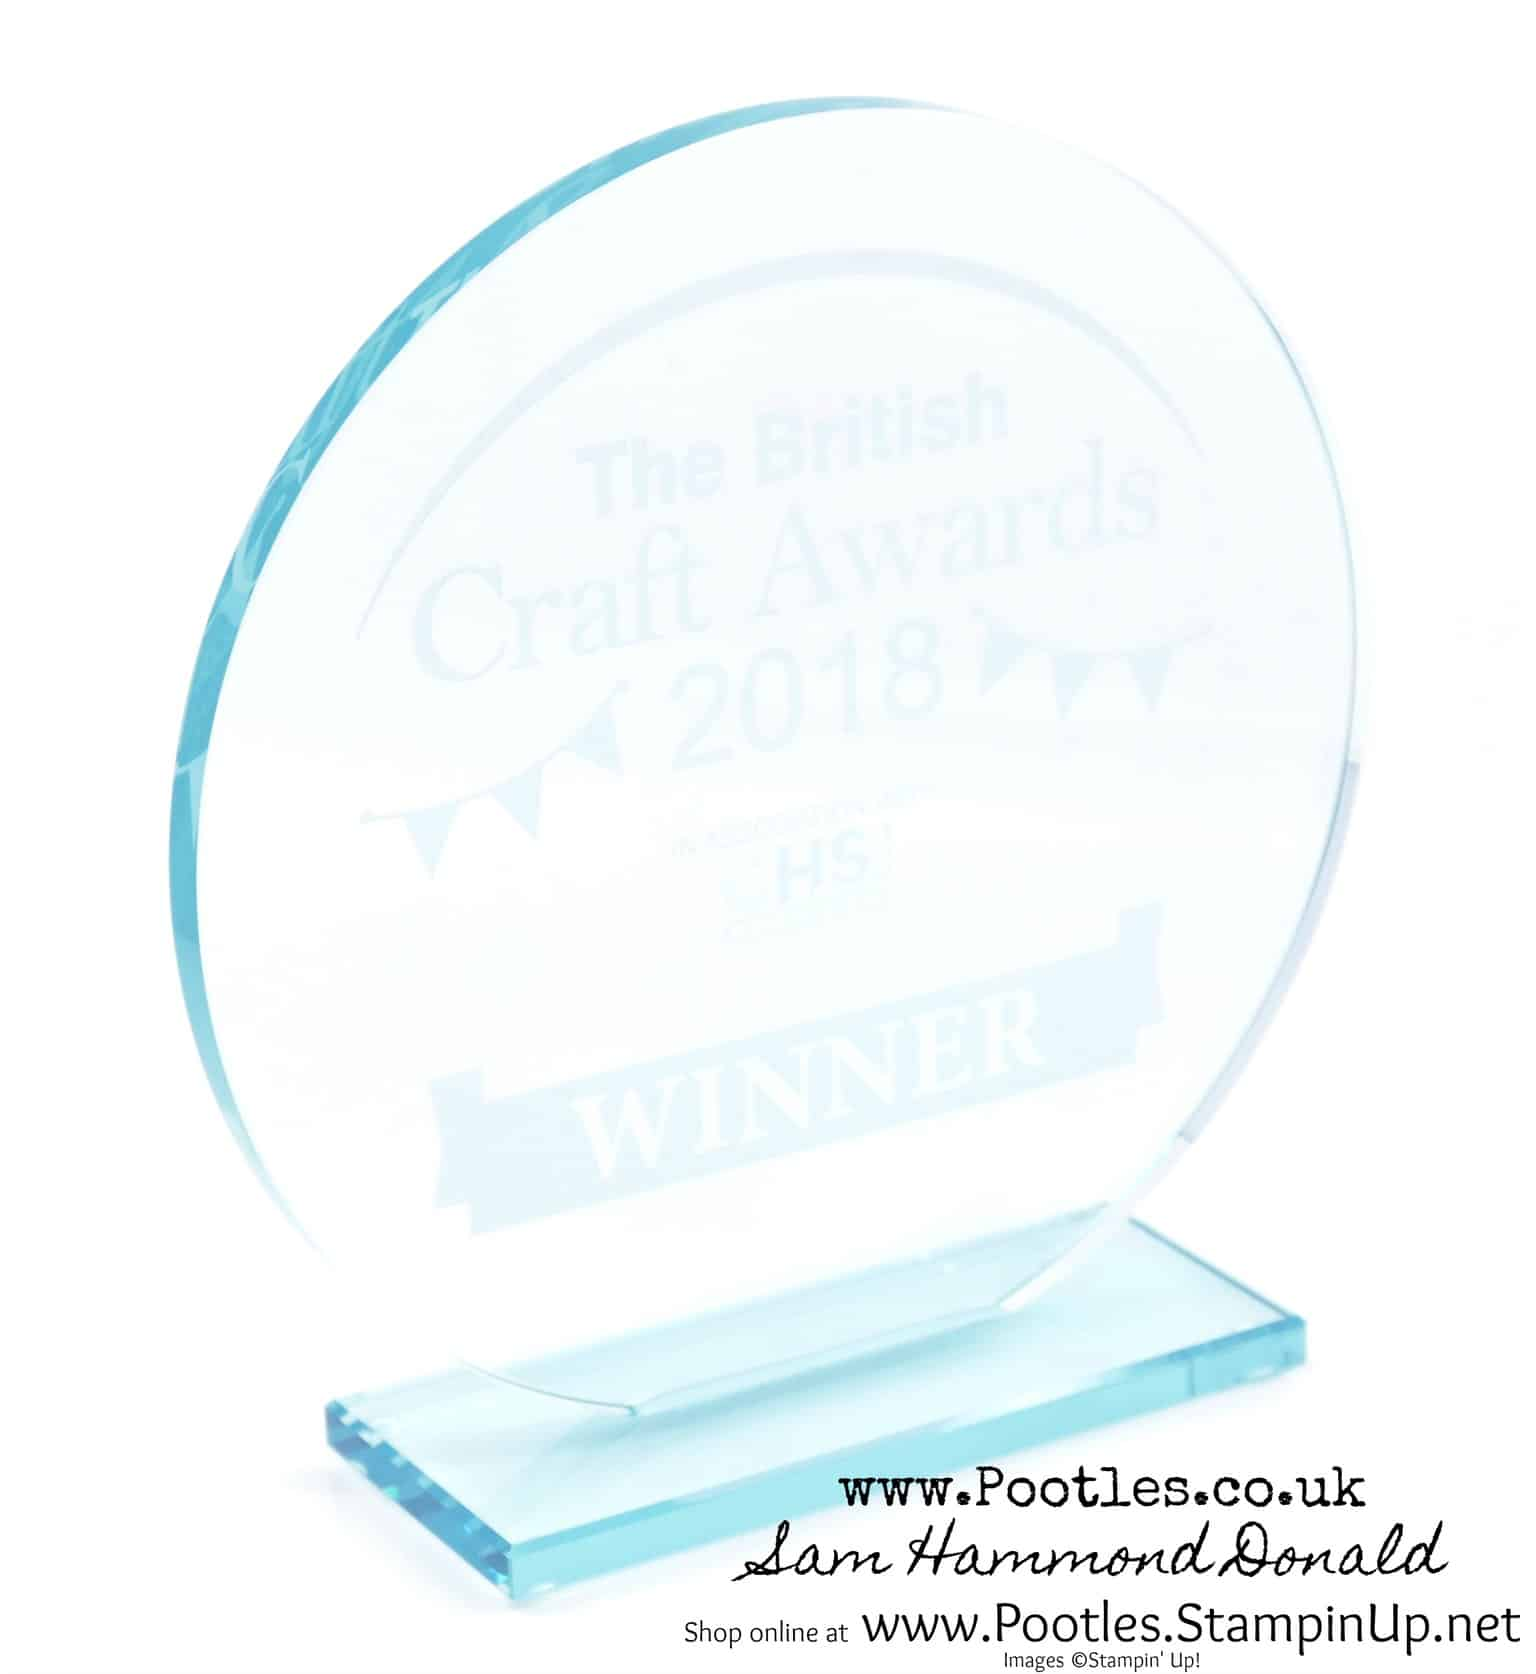 Papercraft Blog of the Year at the British Craft Awards. And I won!!!!